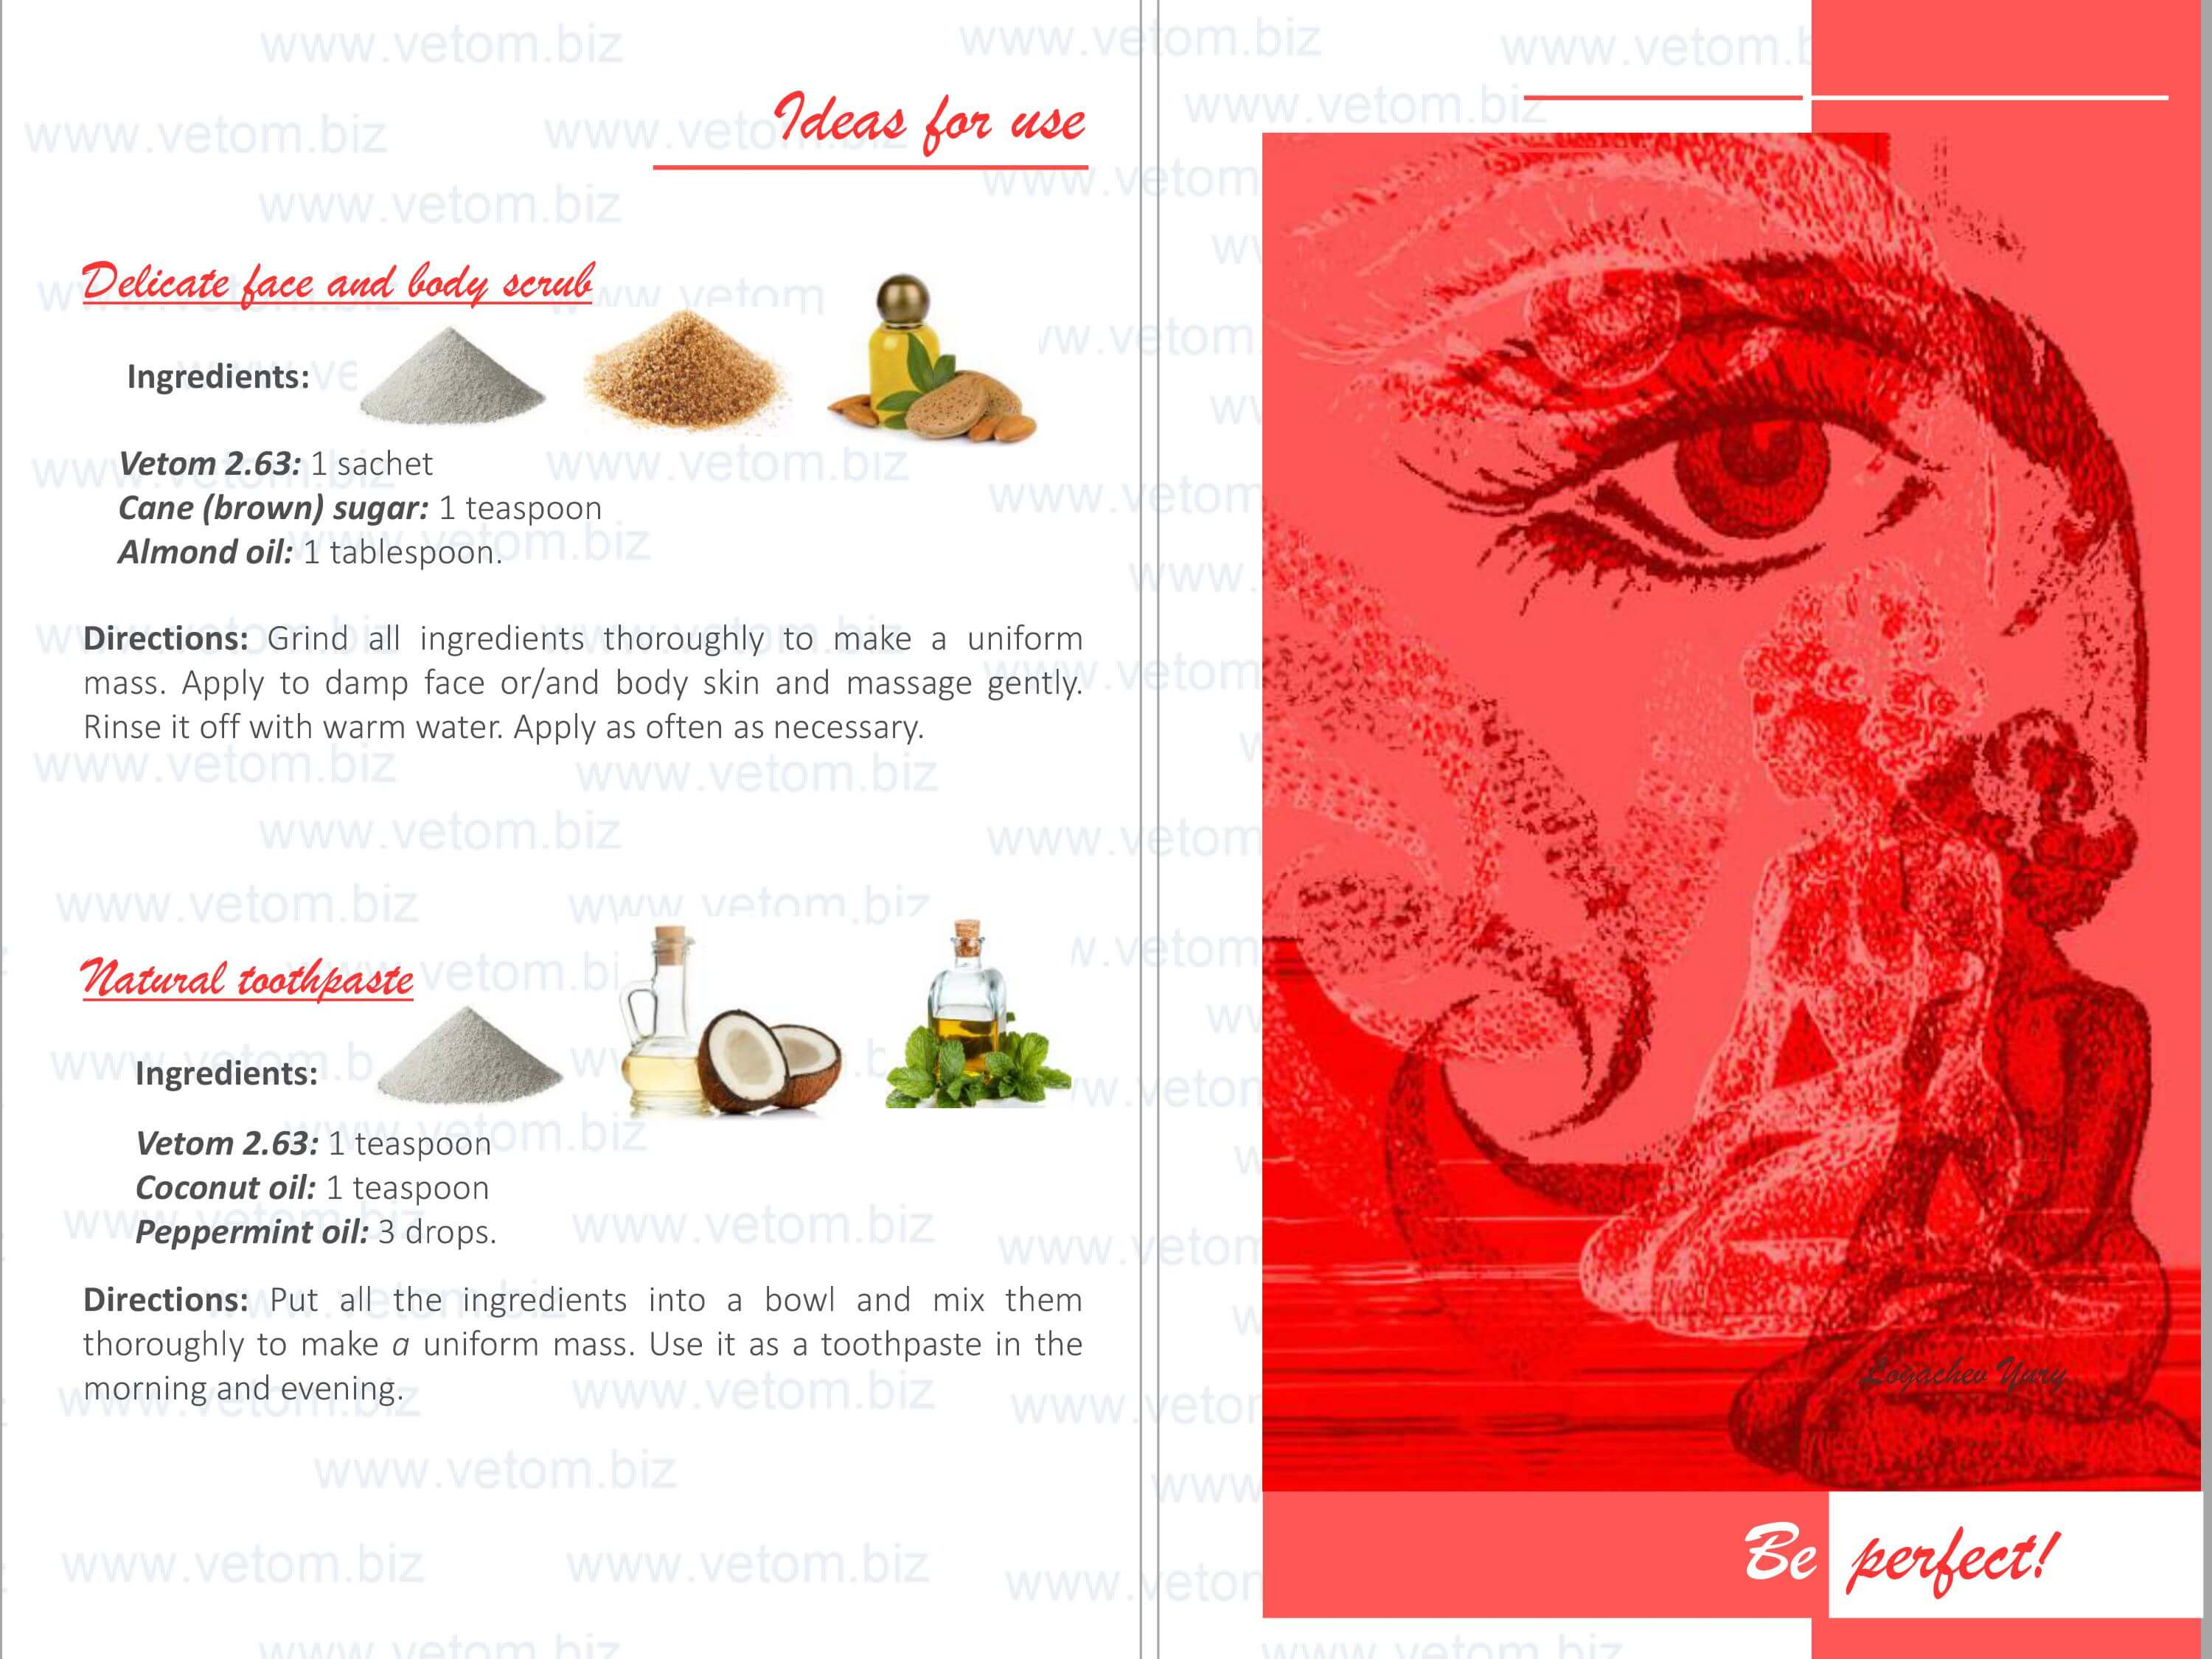 Vetom 2.63 - White cosmetic clay. Ideas for use: Delicate face and body scrub, Natural toothpaste.